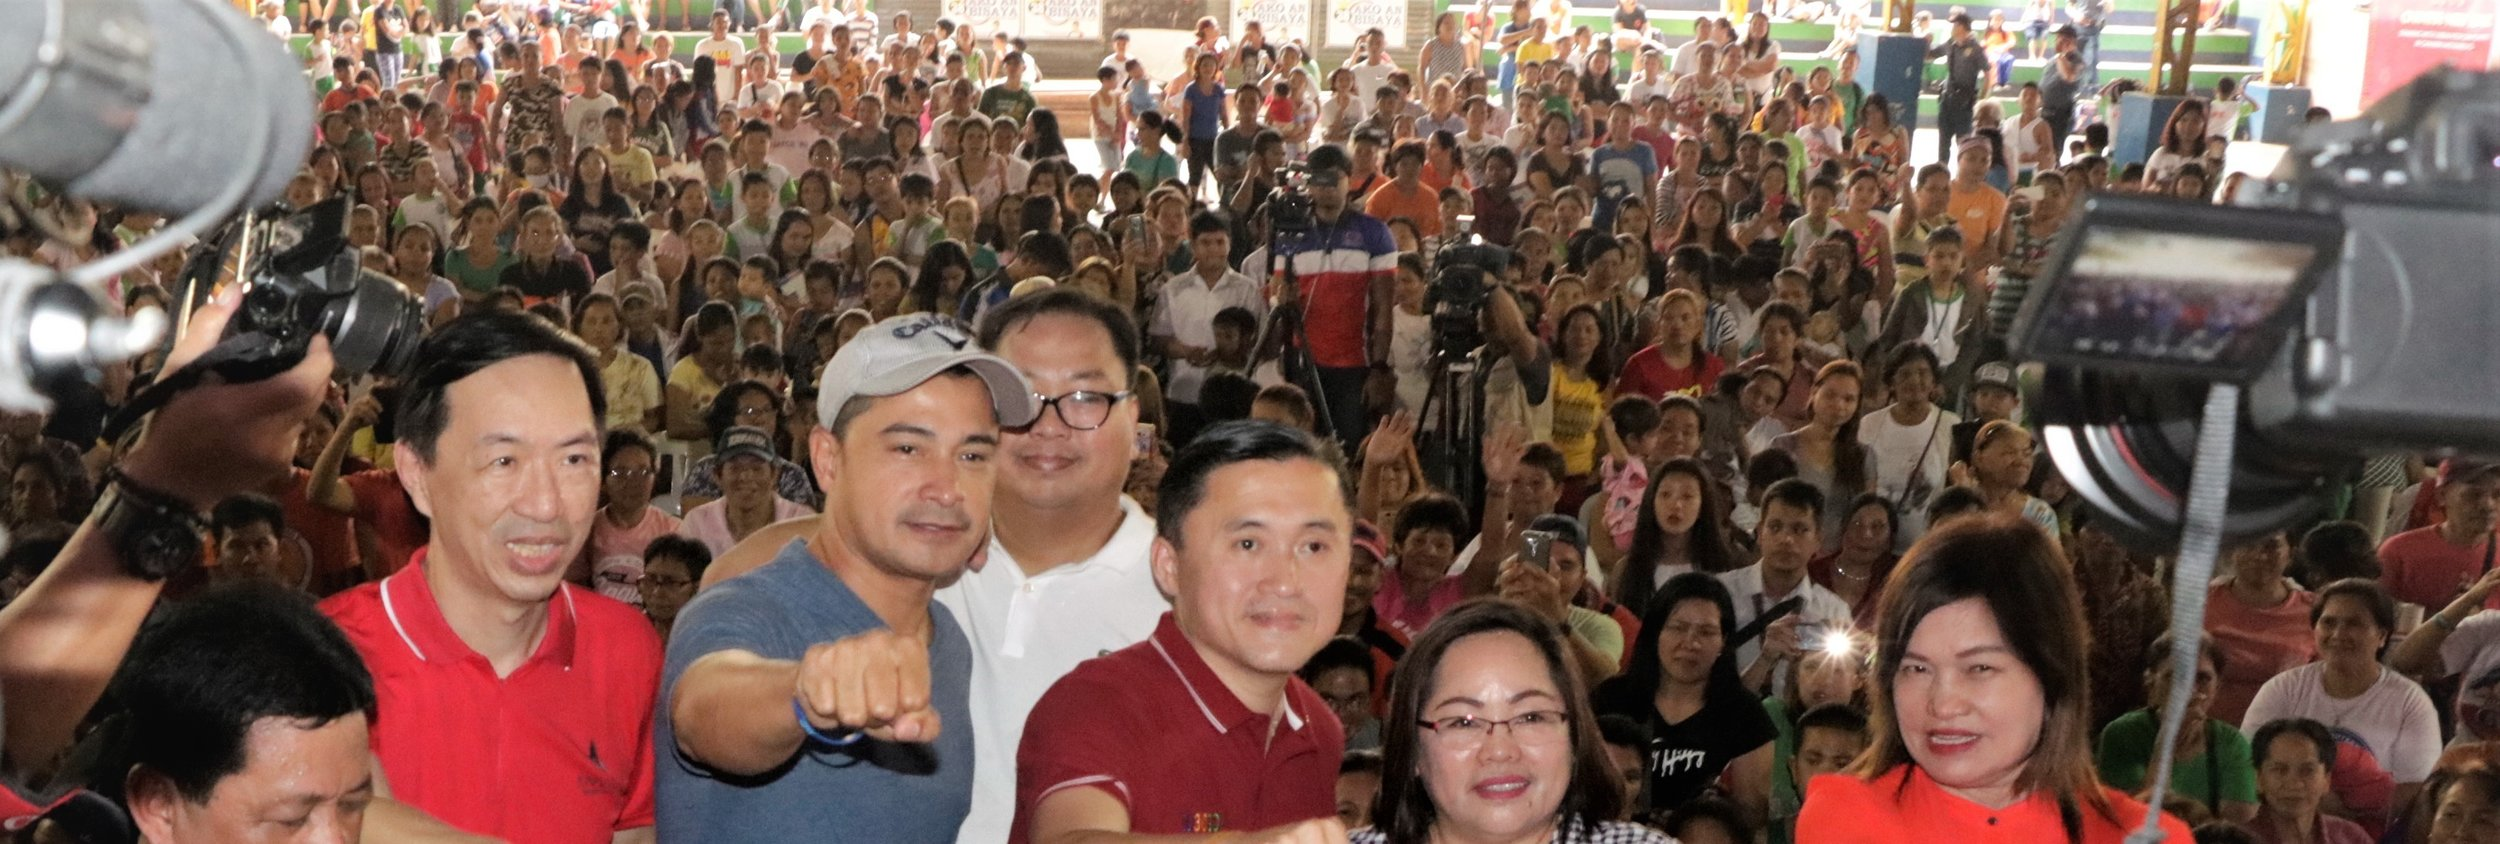 Former SAP and now senatorial aspirant Bong Go in Camarin, Caloocan City during Anvil's Business Culb outreach. He helped in distributing 10.000 tikoy in Camarin D Elementary School. With him is actor Cesar Montano and Anvil's past President Wilson Lee Flores (left).